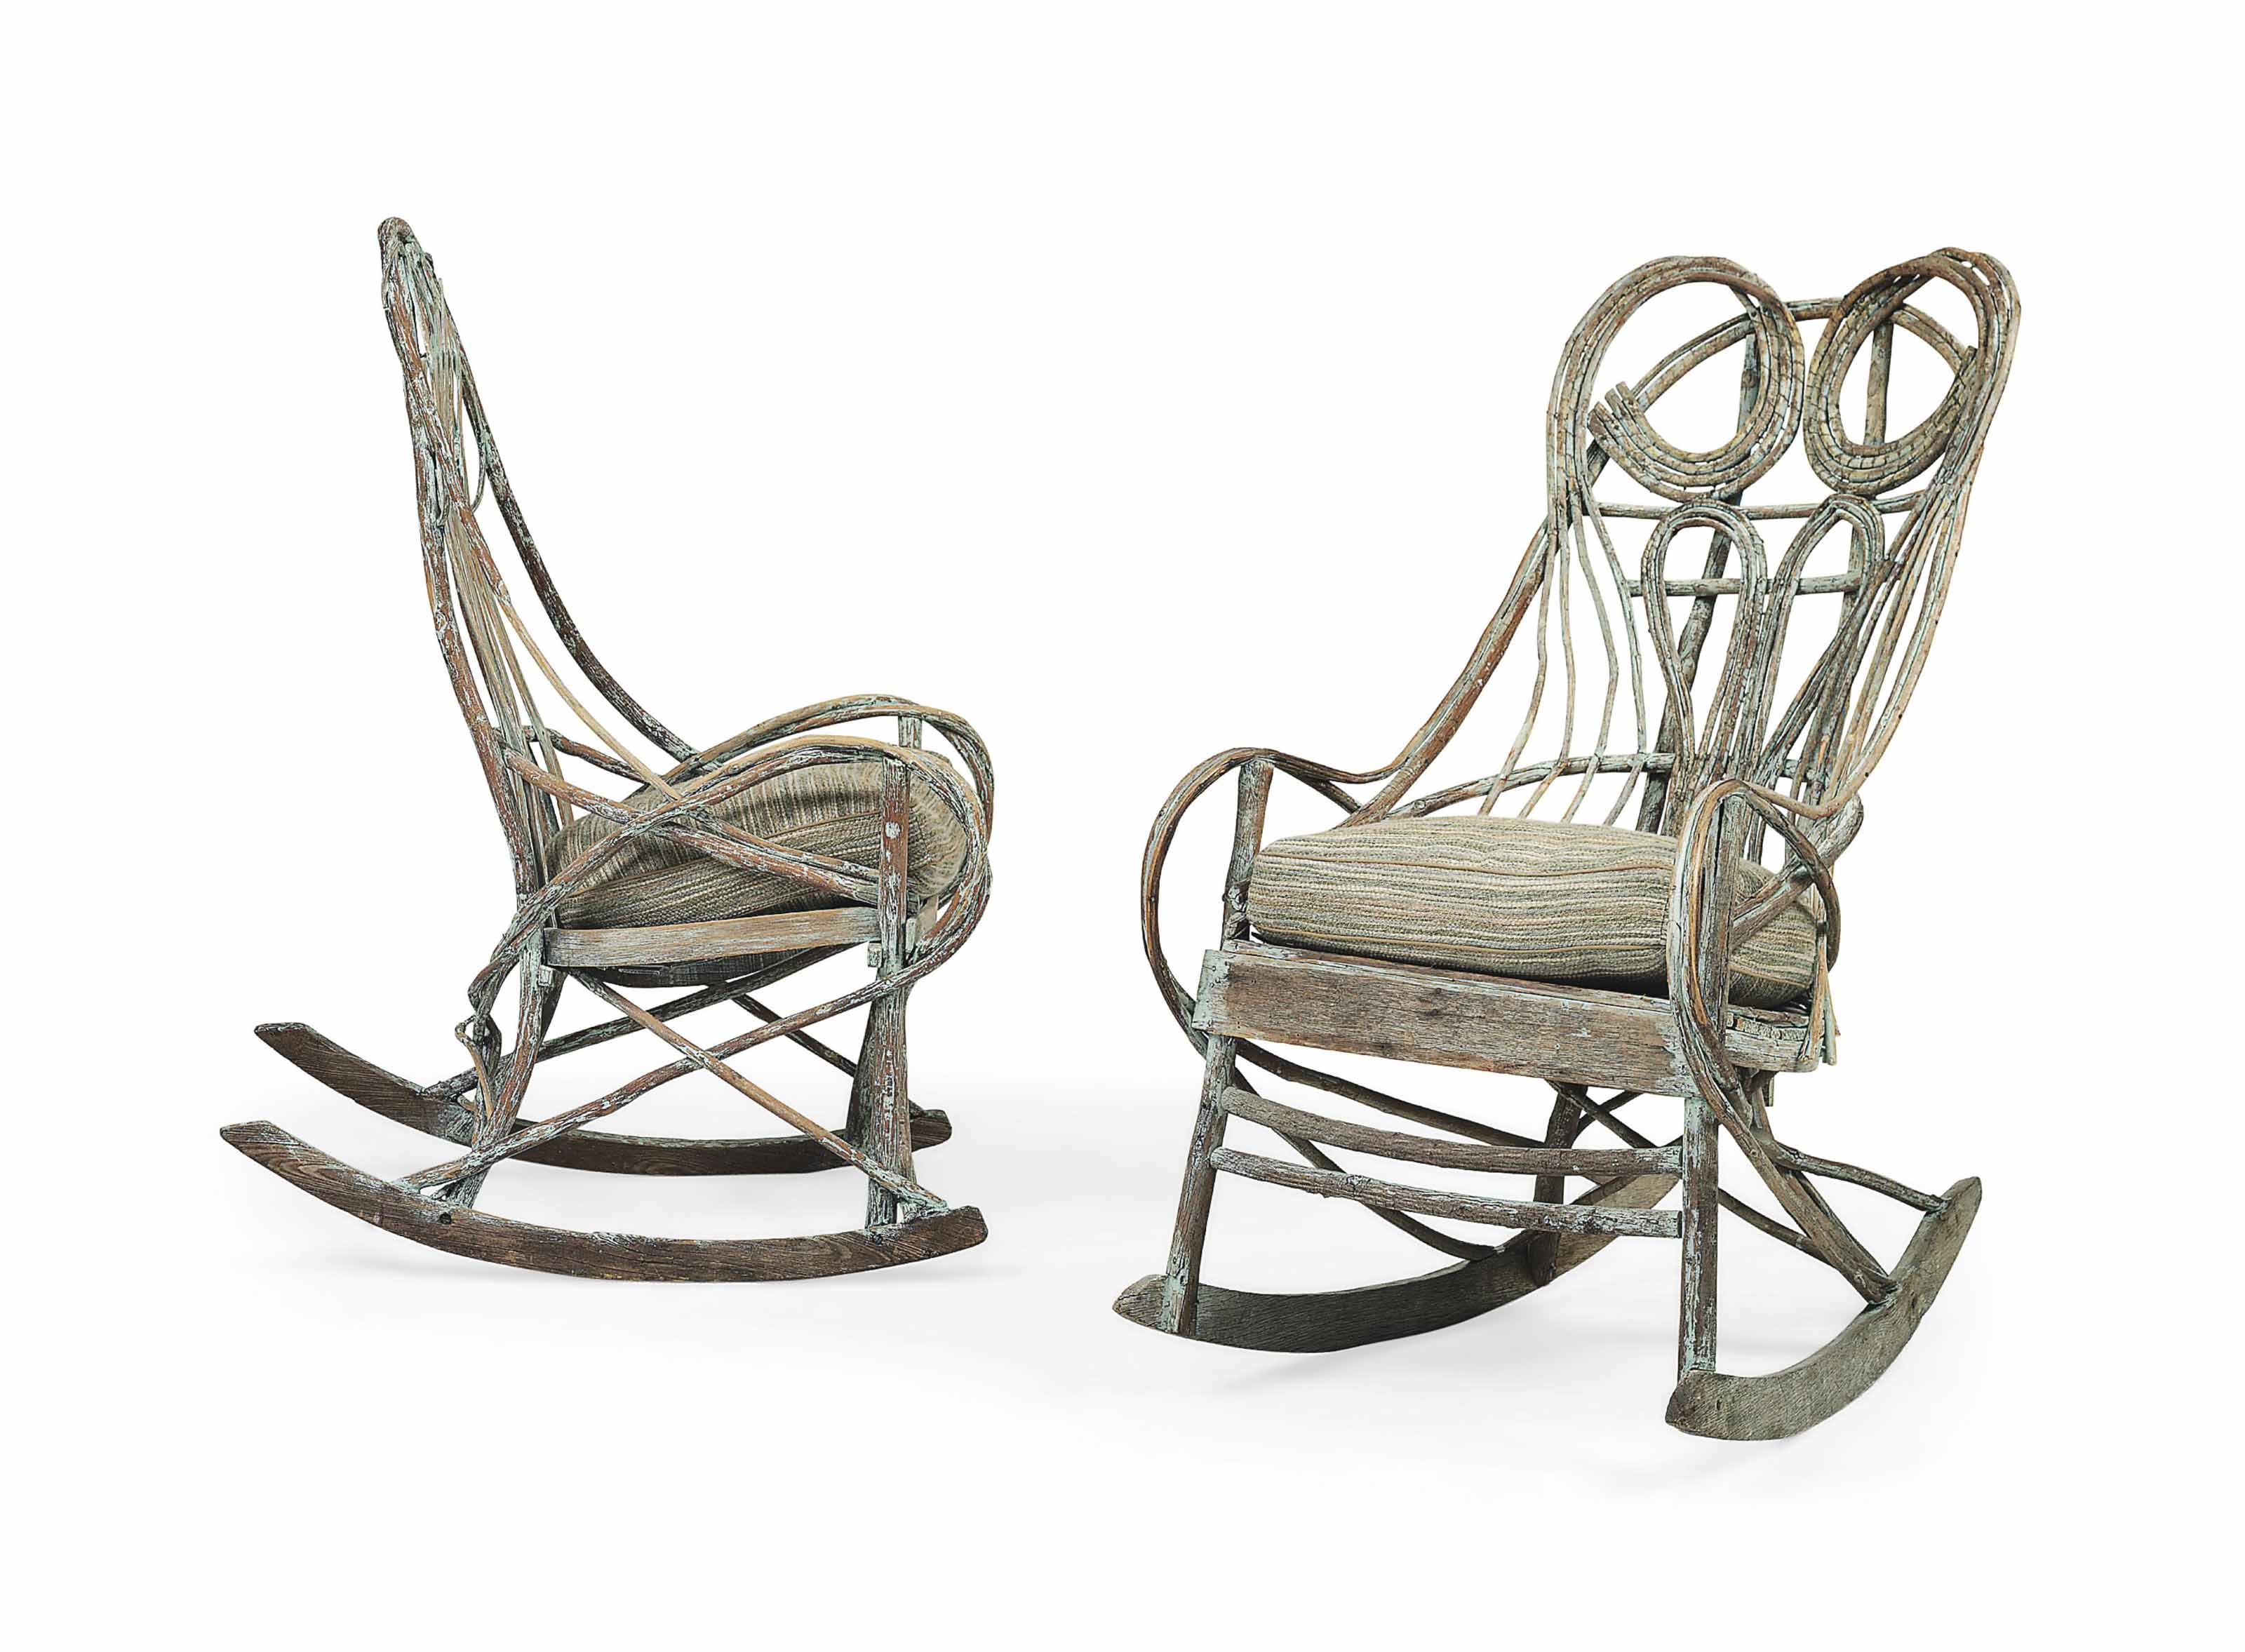 AN AMERICAN GREEN-PAINTED BENTWOOD ROCKING CHAIR